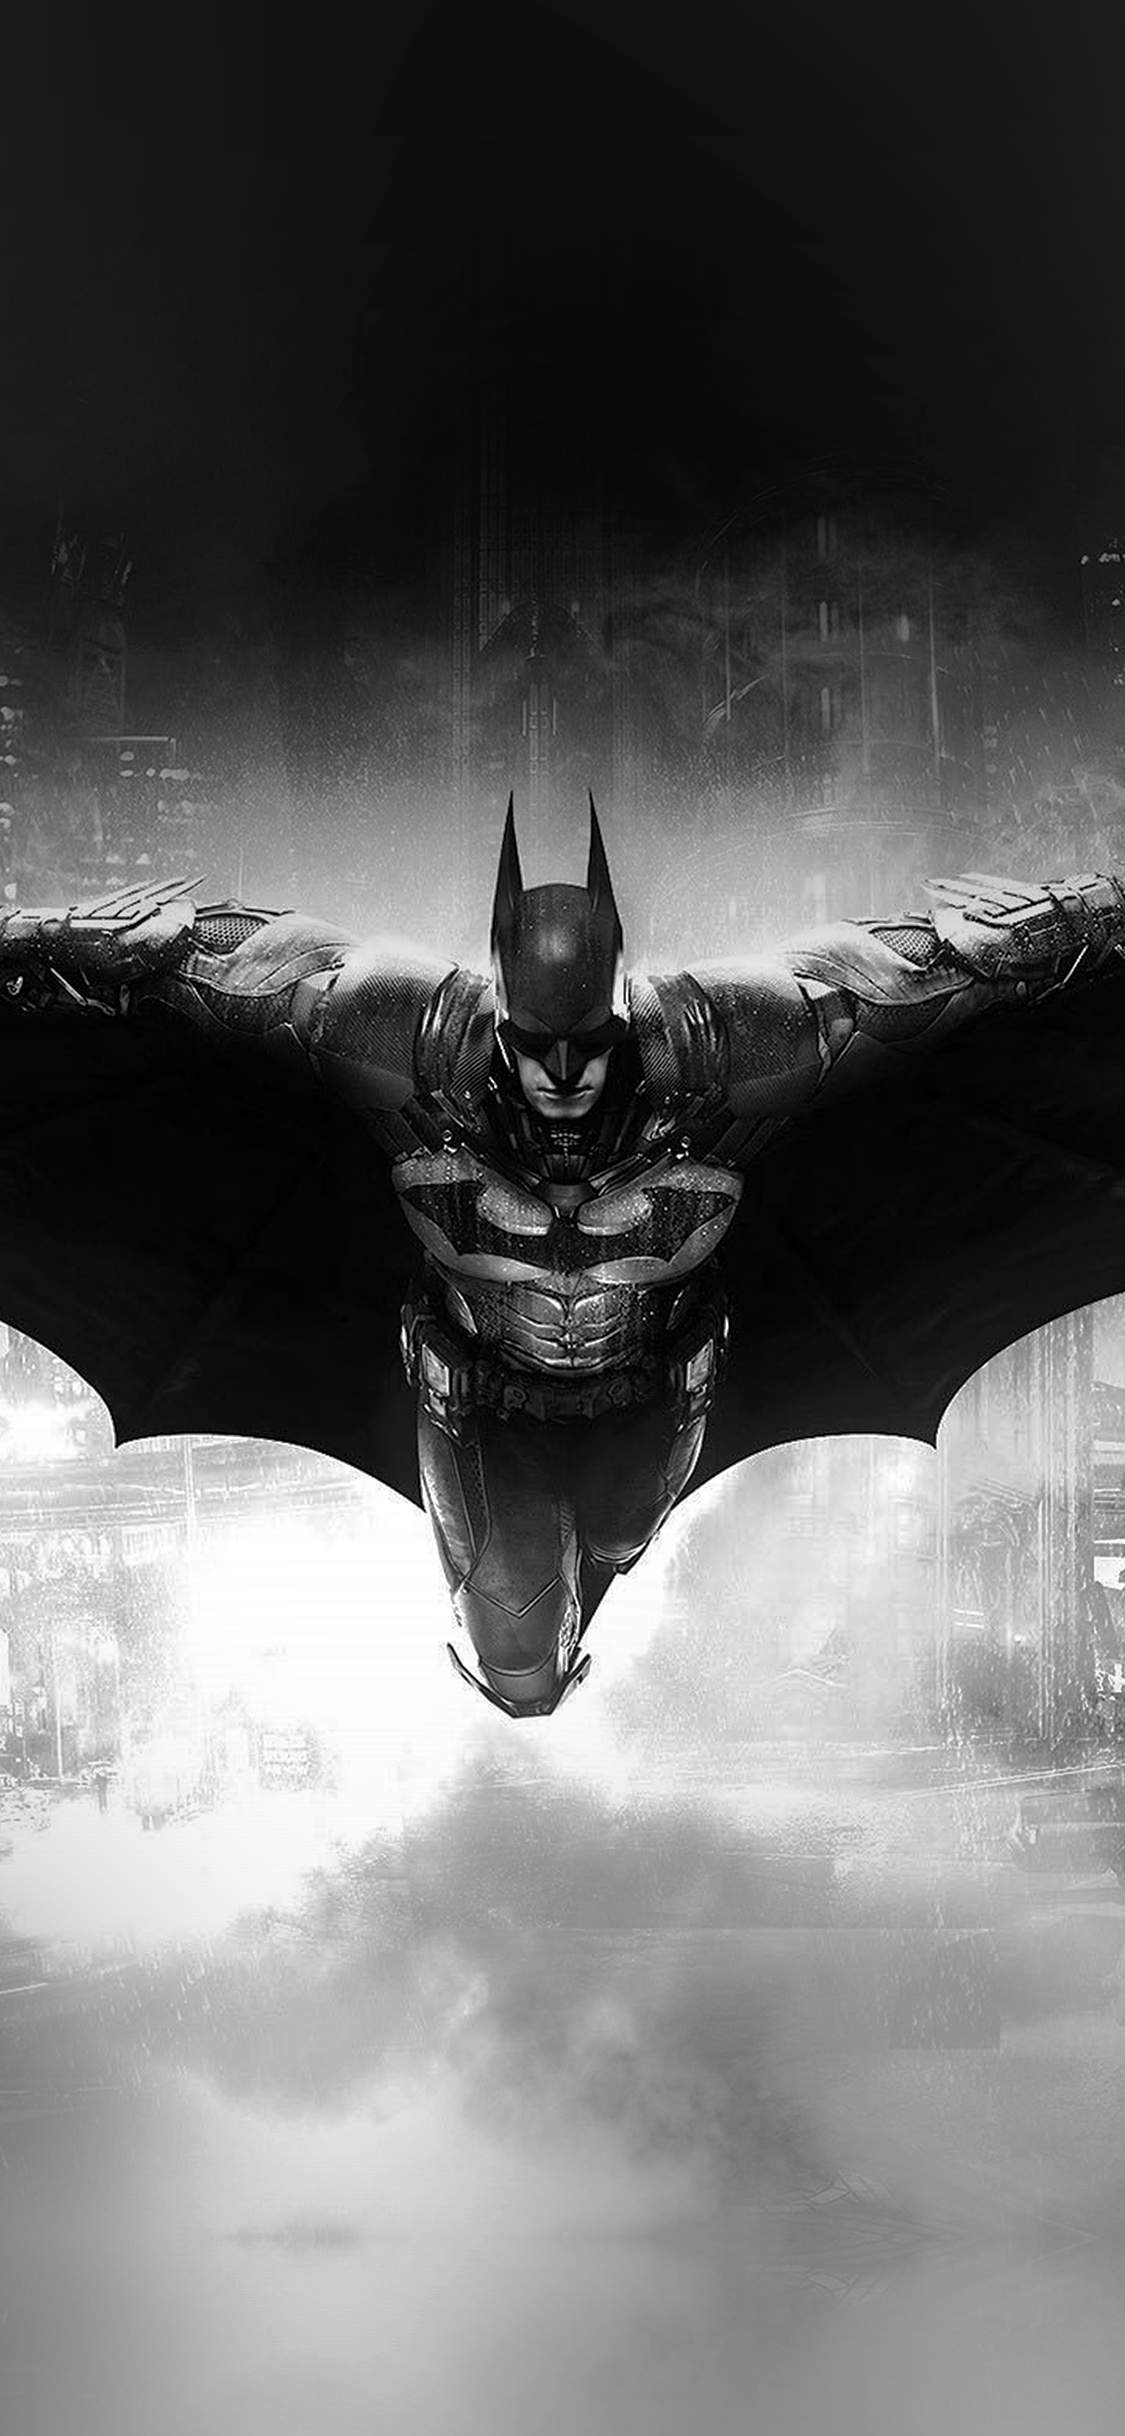 Iphonexpapers Com Iphone X Wallpaper Ao83 Batman Dark Bw Game Hero Art Illust